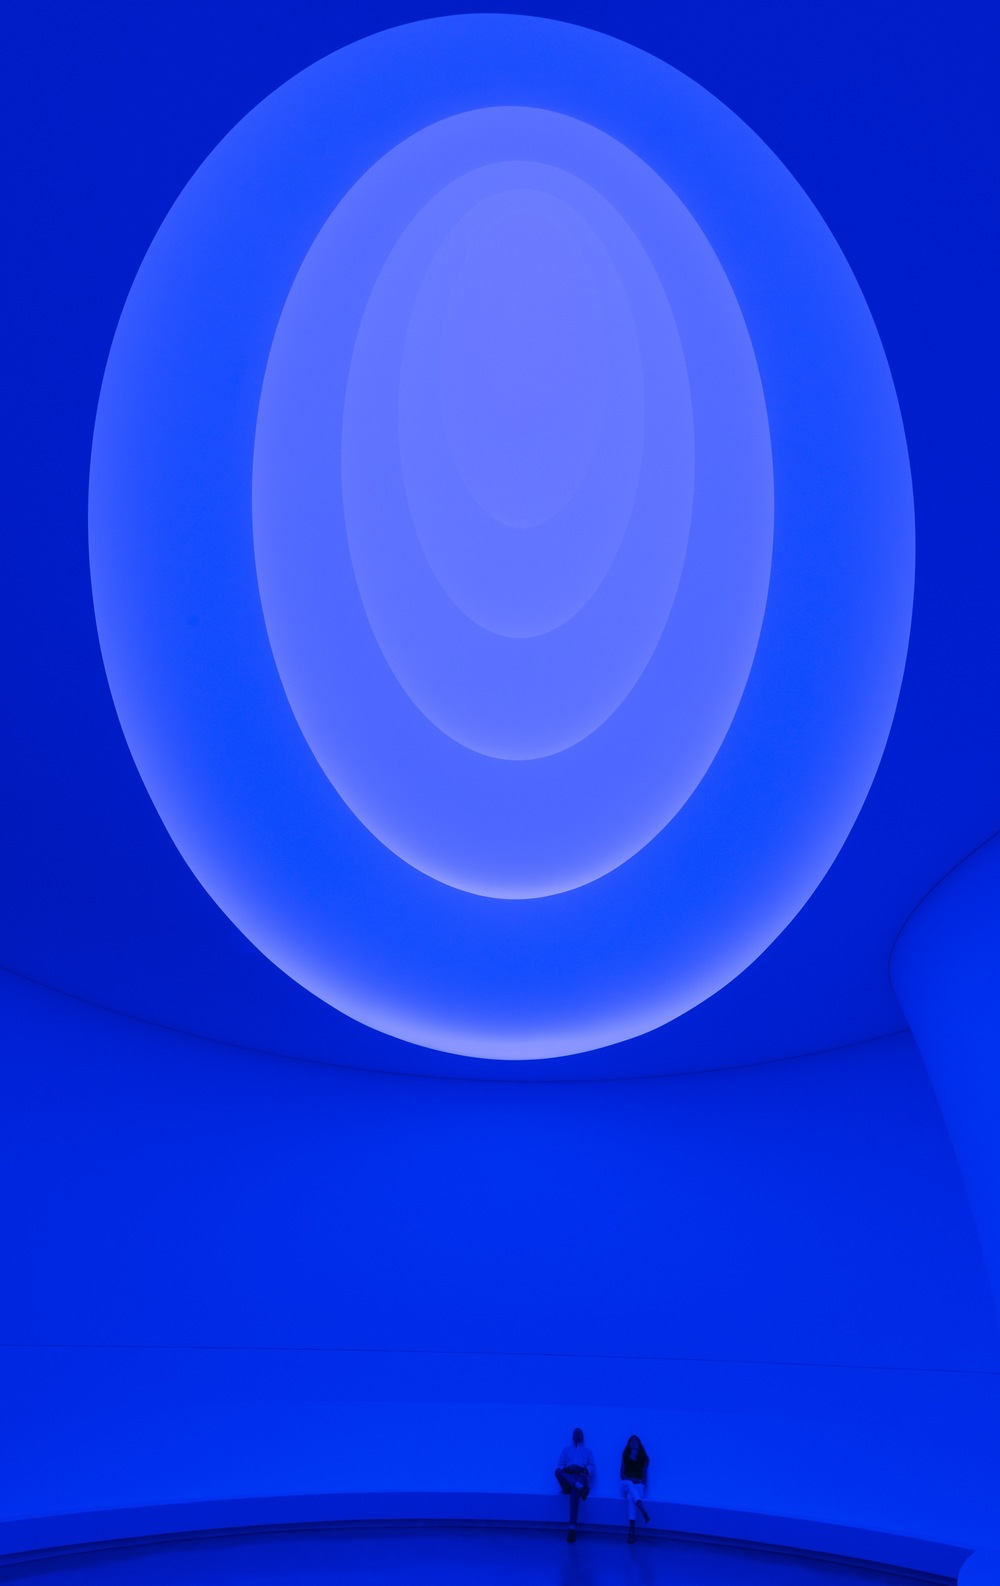 51cb0781b3fc4bc13300001c_james-turrell-transforms-the-guggenheim-_james_turrell-exh_ph020.jpg